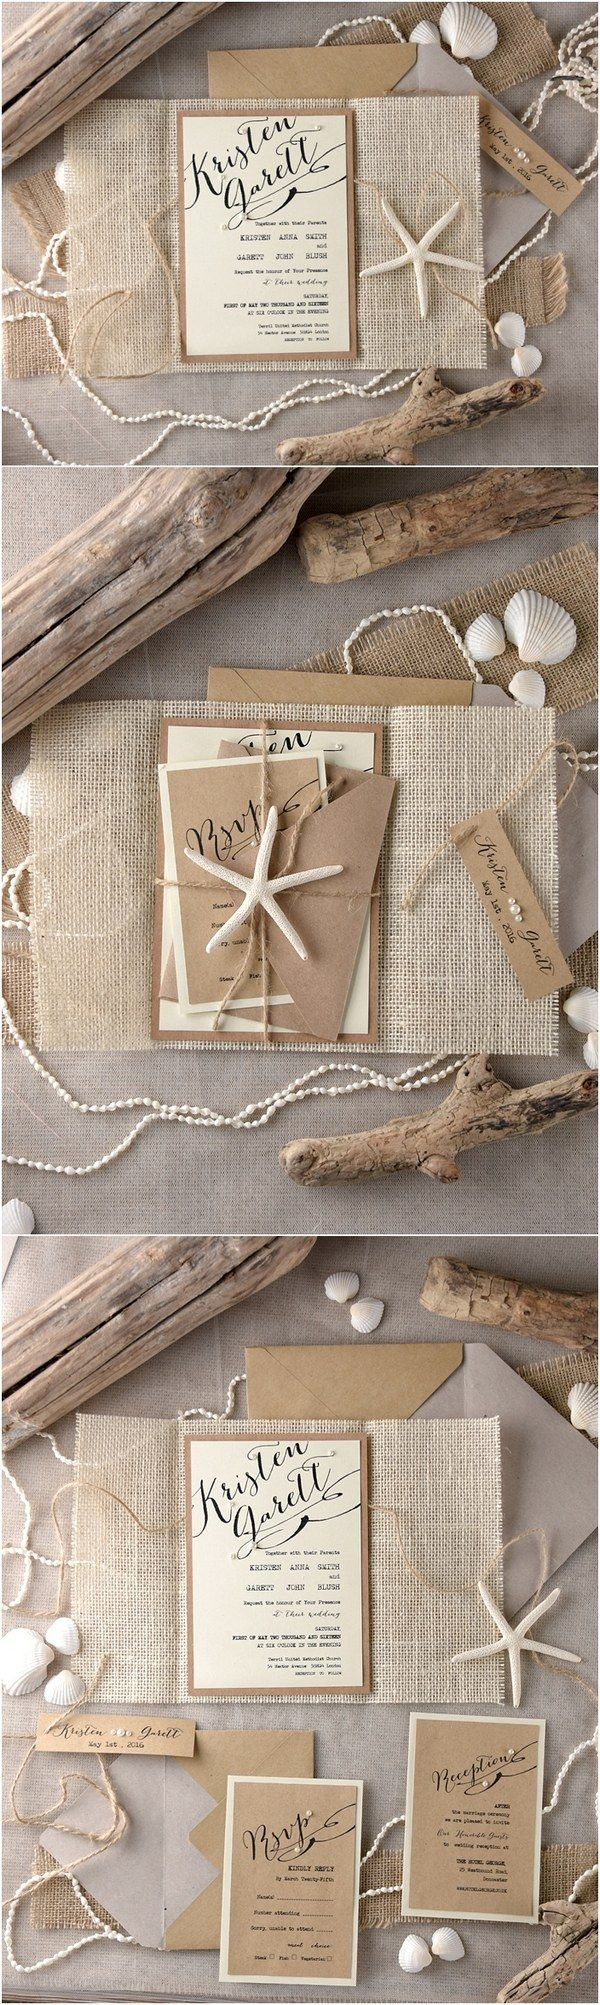 78 Best Wedding Invitations Images On Pinterest Wedding Details